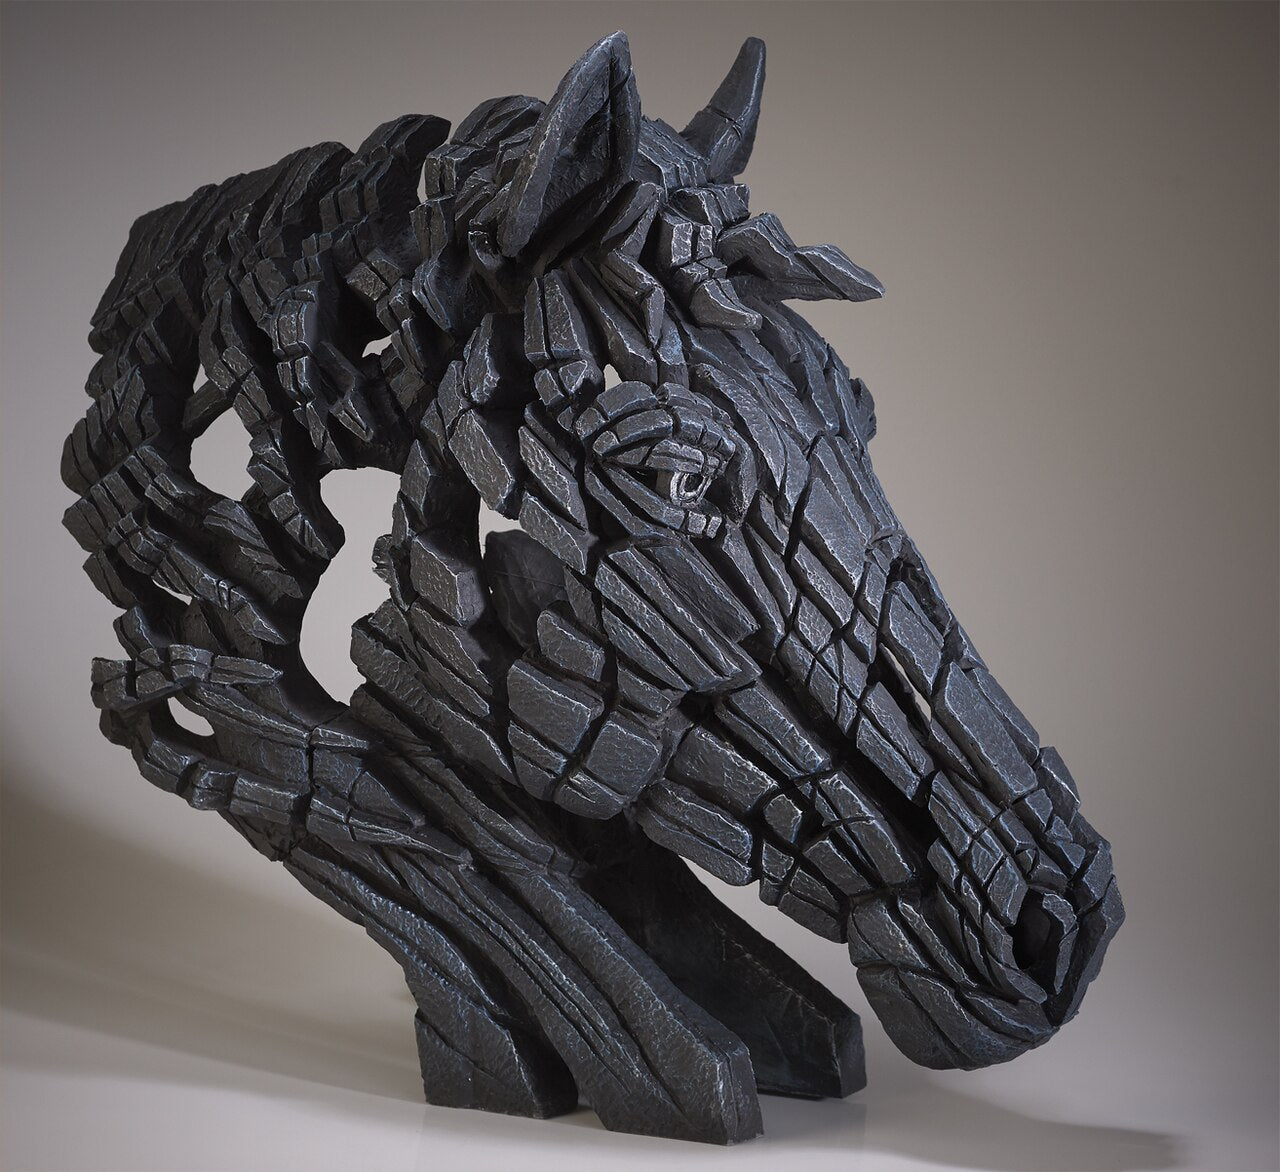 Edge Sculpture Horse Bust - Black